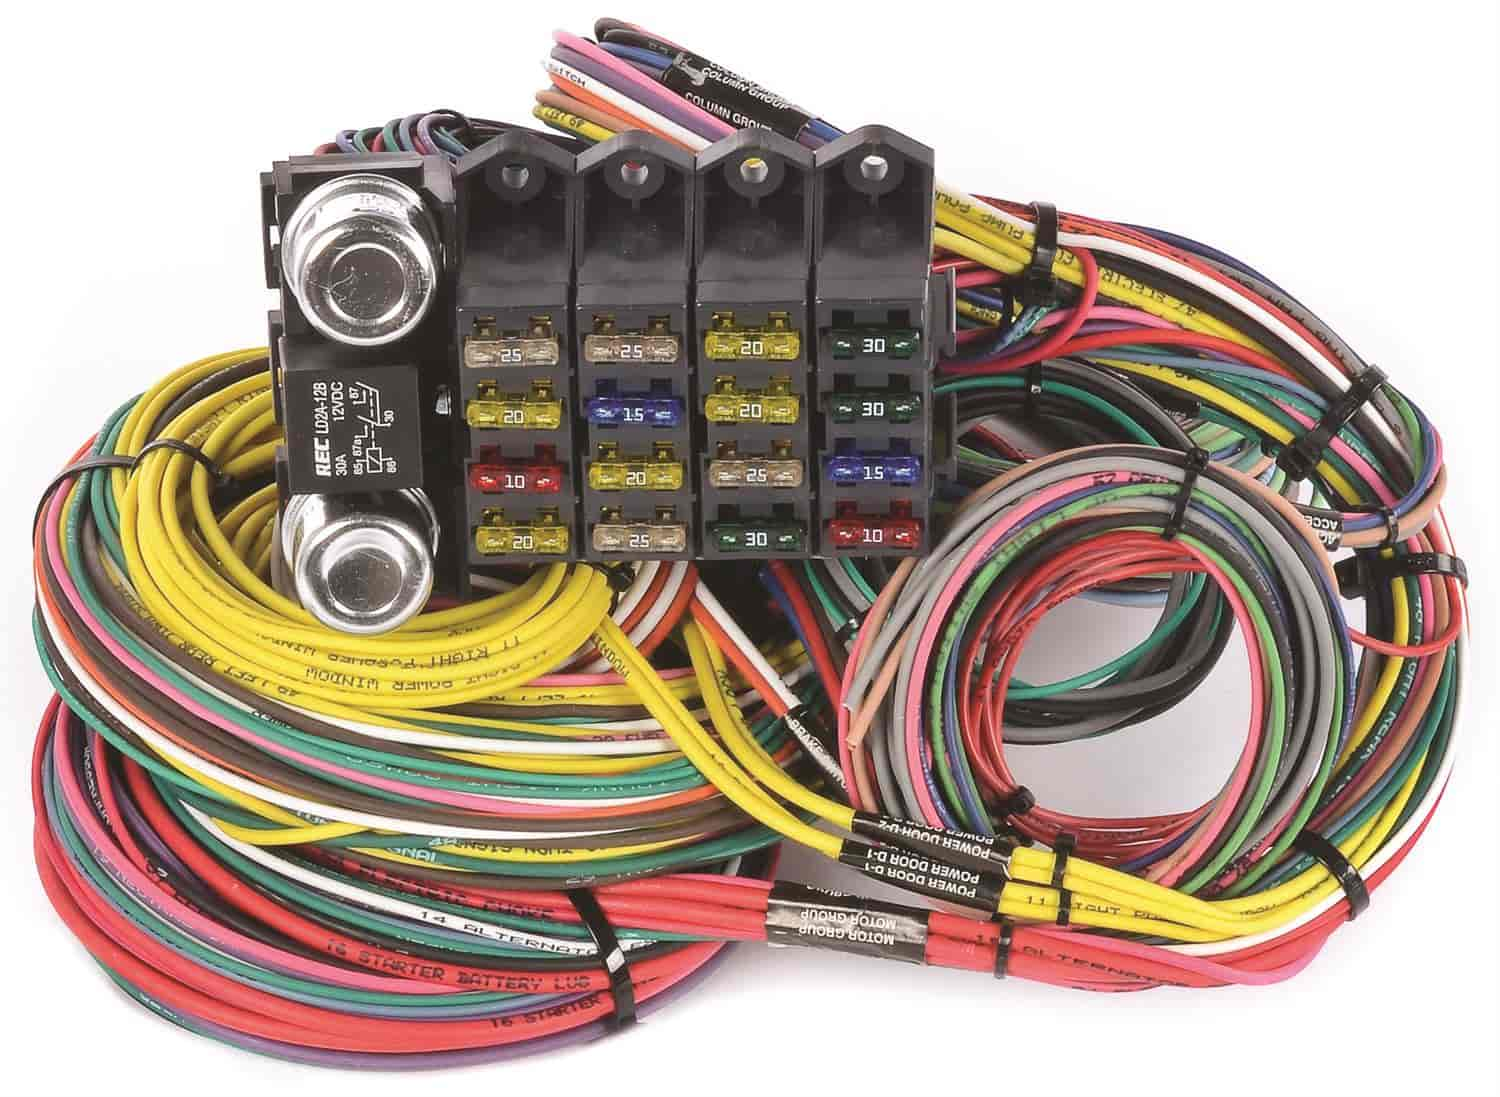 555 10405 jegs performance products 10405 universal wiring harness, 20 jegs universal wiring harness at panicattacktreatment.co